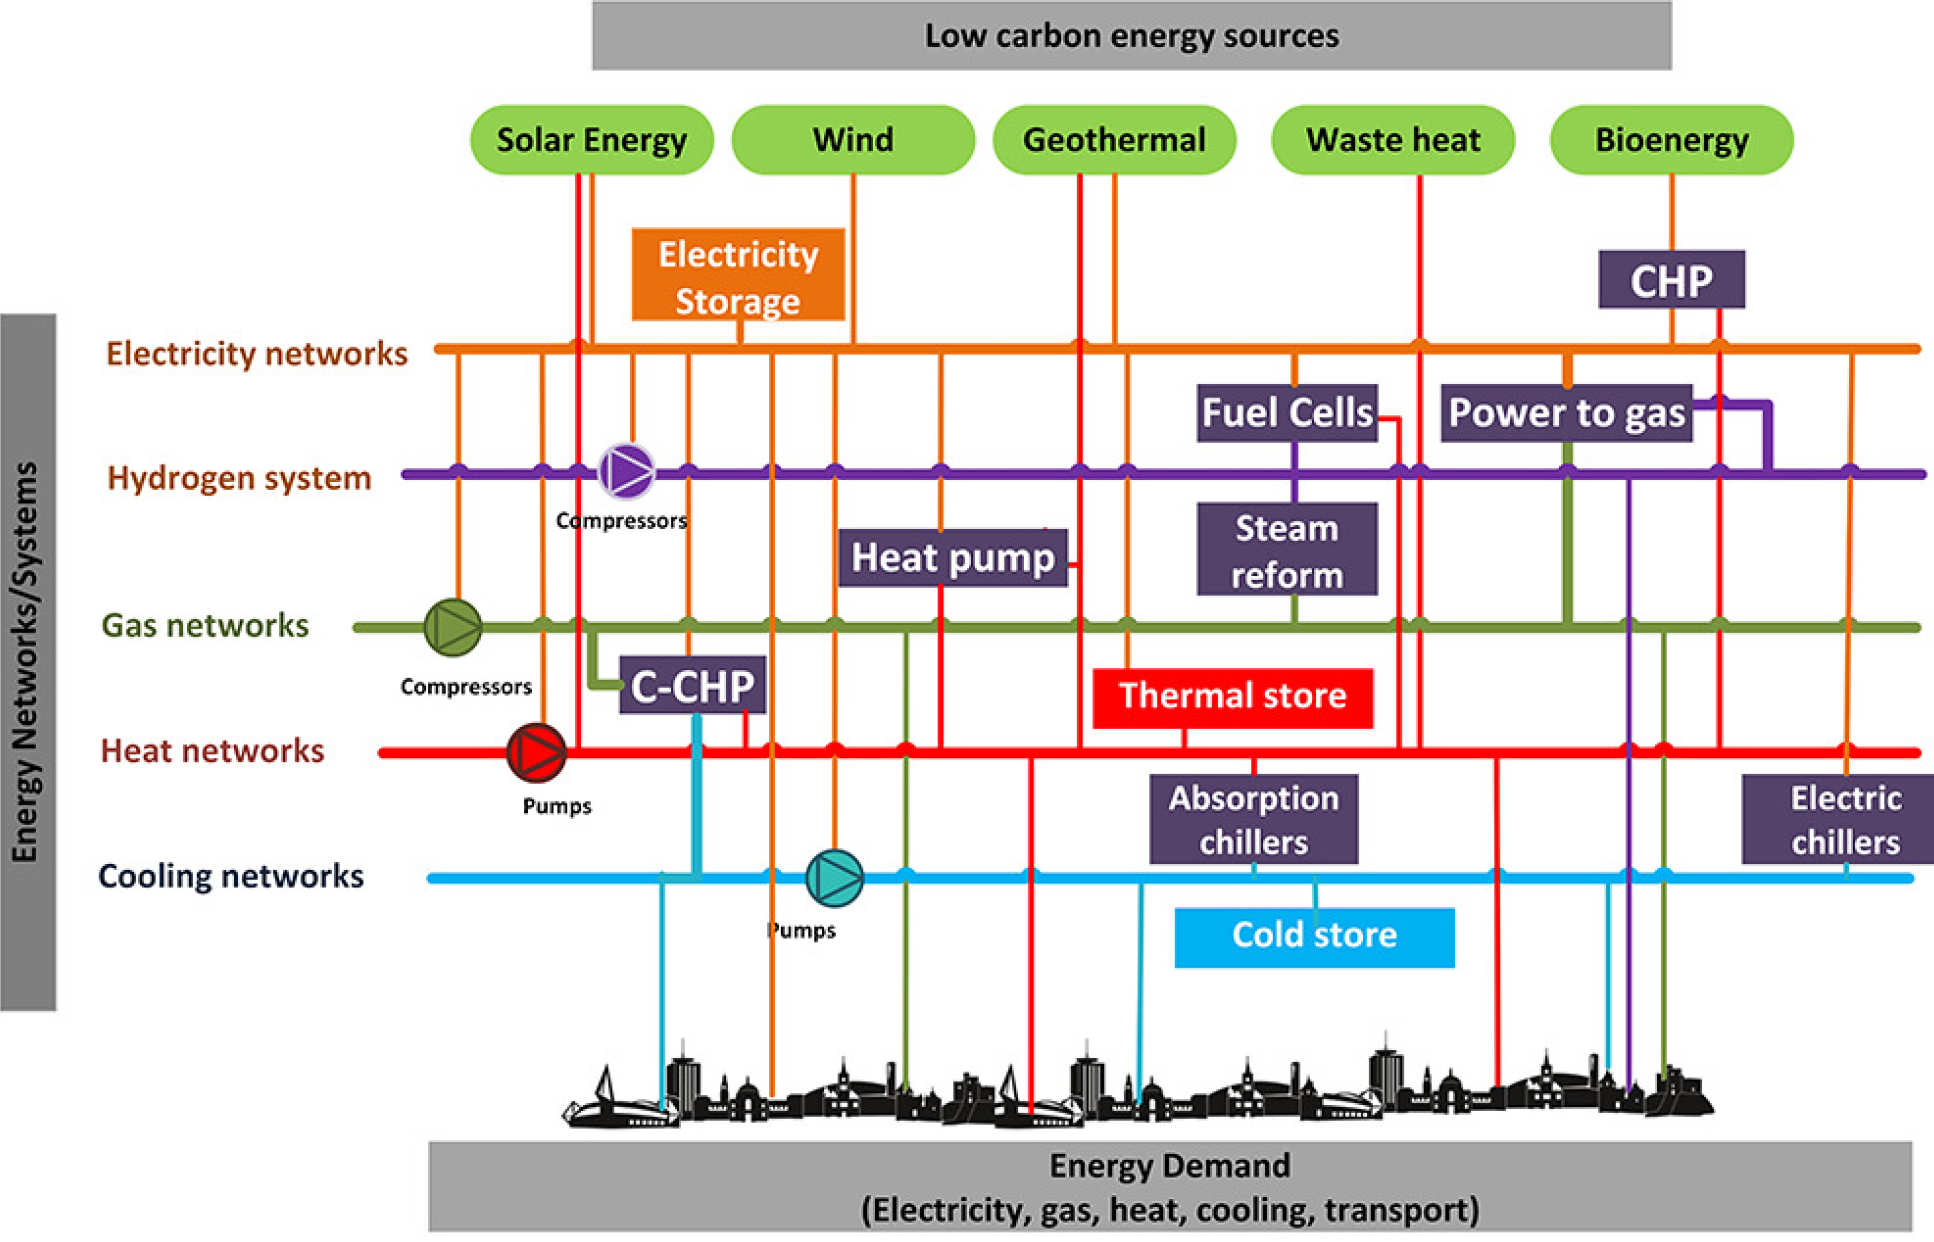 Possible areas for integration between different energy systems